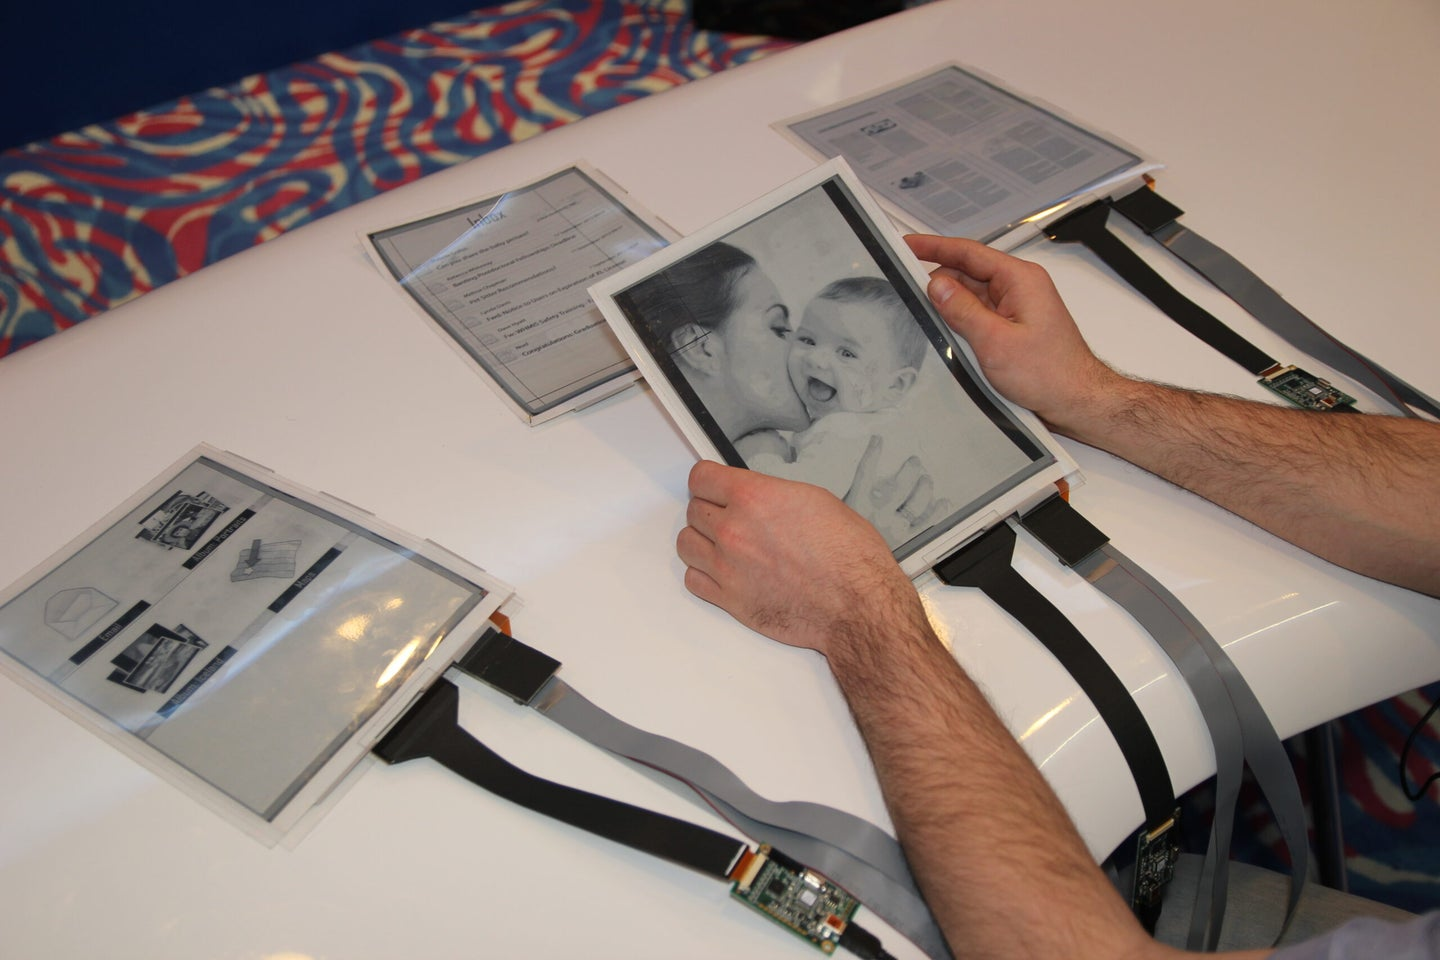 Flexible, Paper-Like Tablet Computers Work Together To Make Computing More Like Shuffling Papers